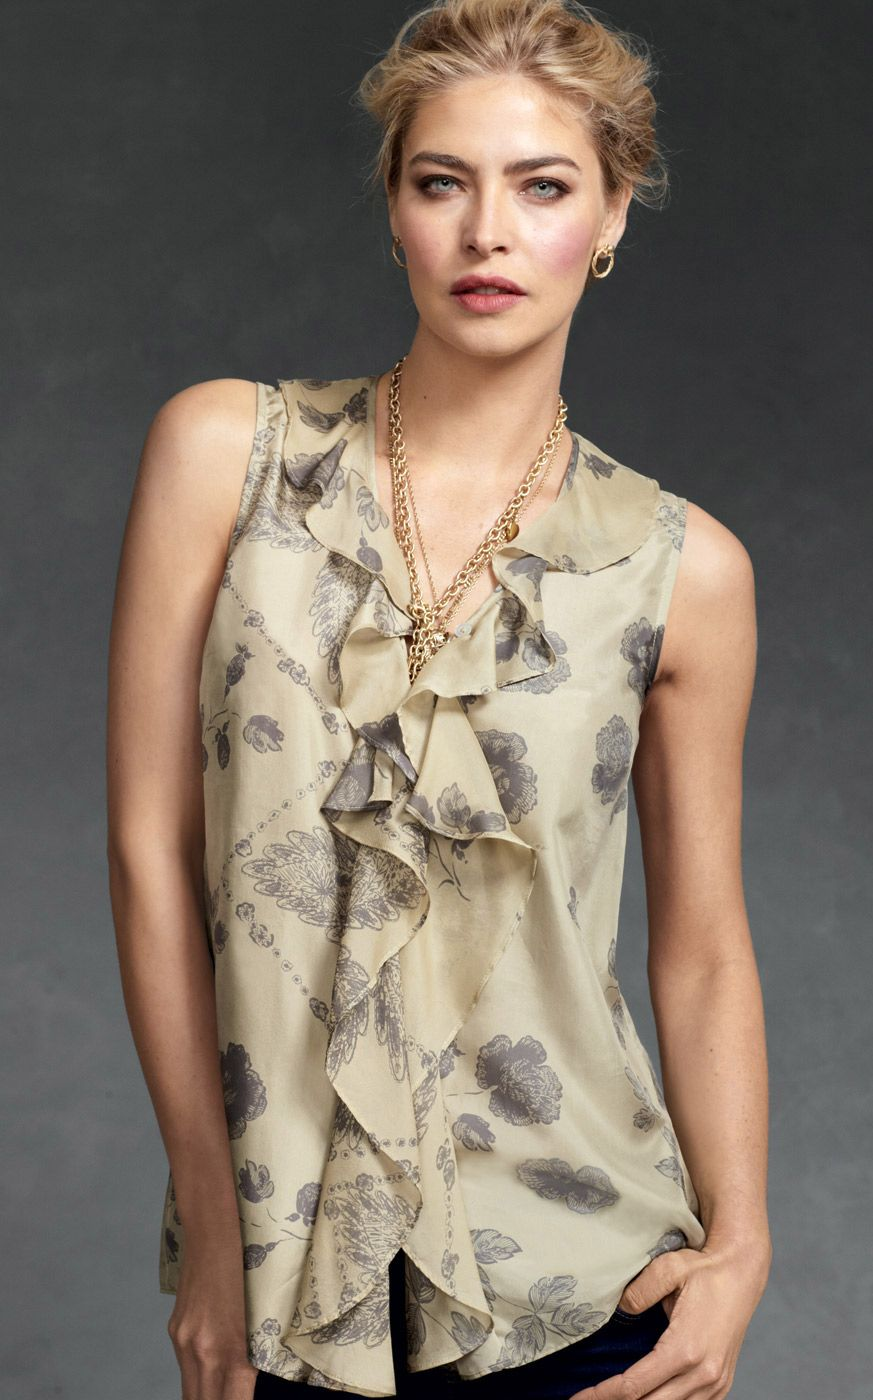 Tranquil Blouse - Tops, Blouses - CAbi Fall 2012 Collection